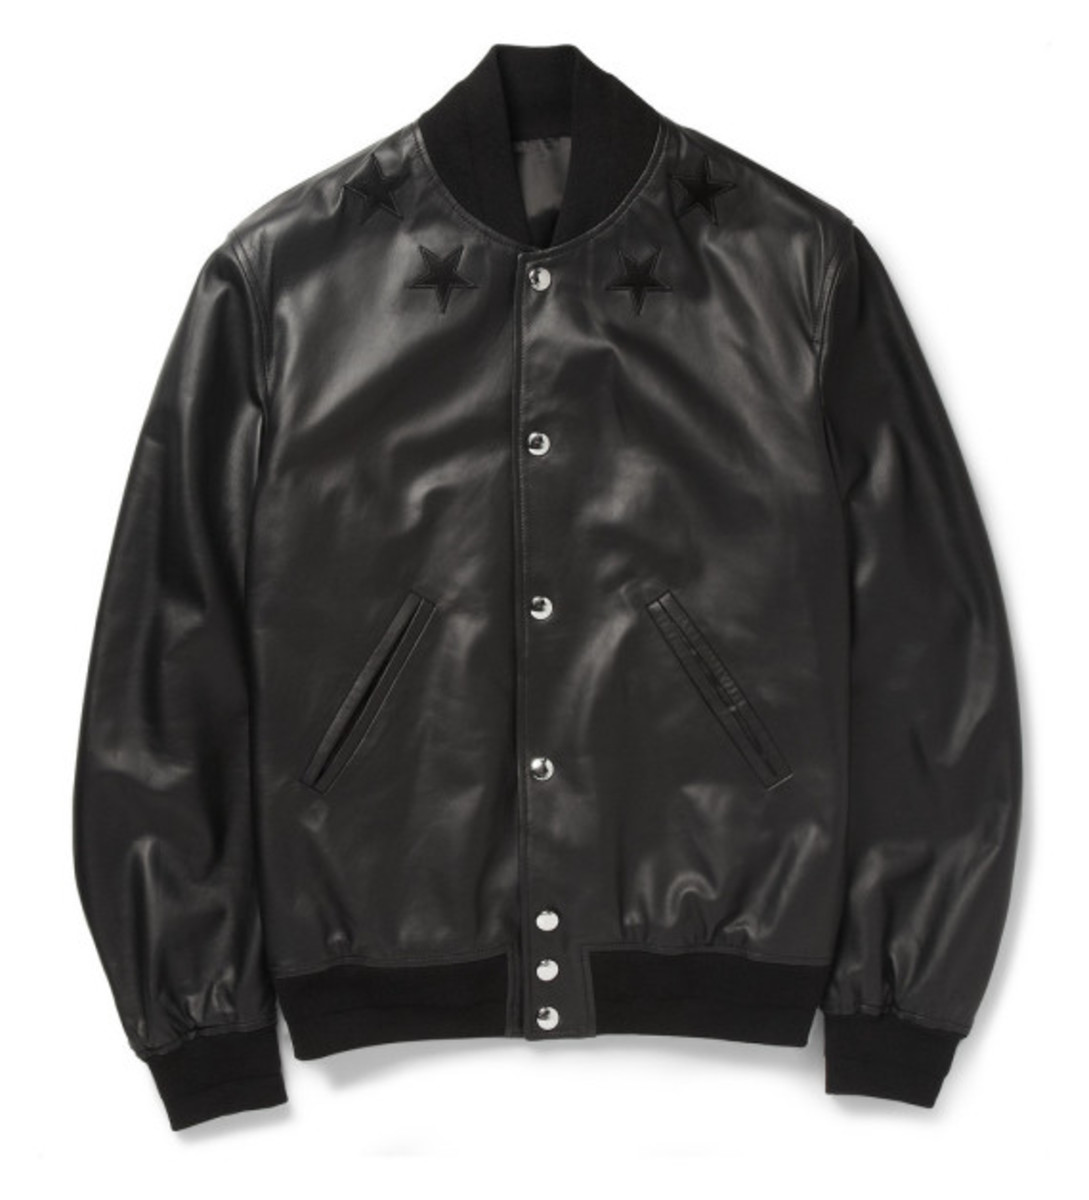 givenchy-leather-embroidered-star-baseball-jacket-05